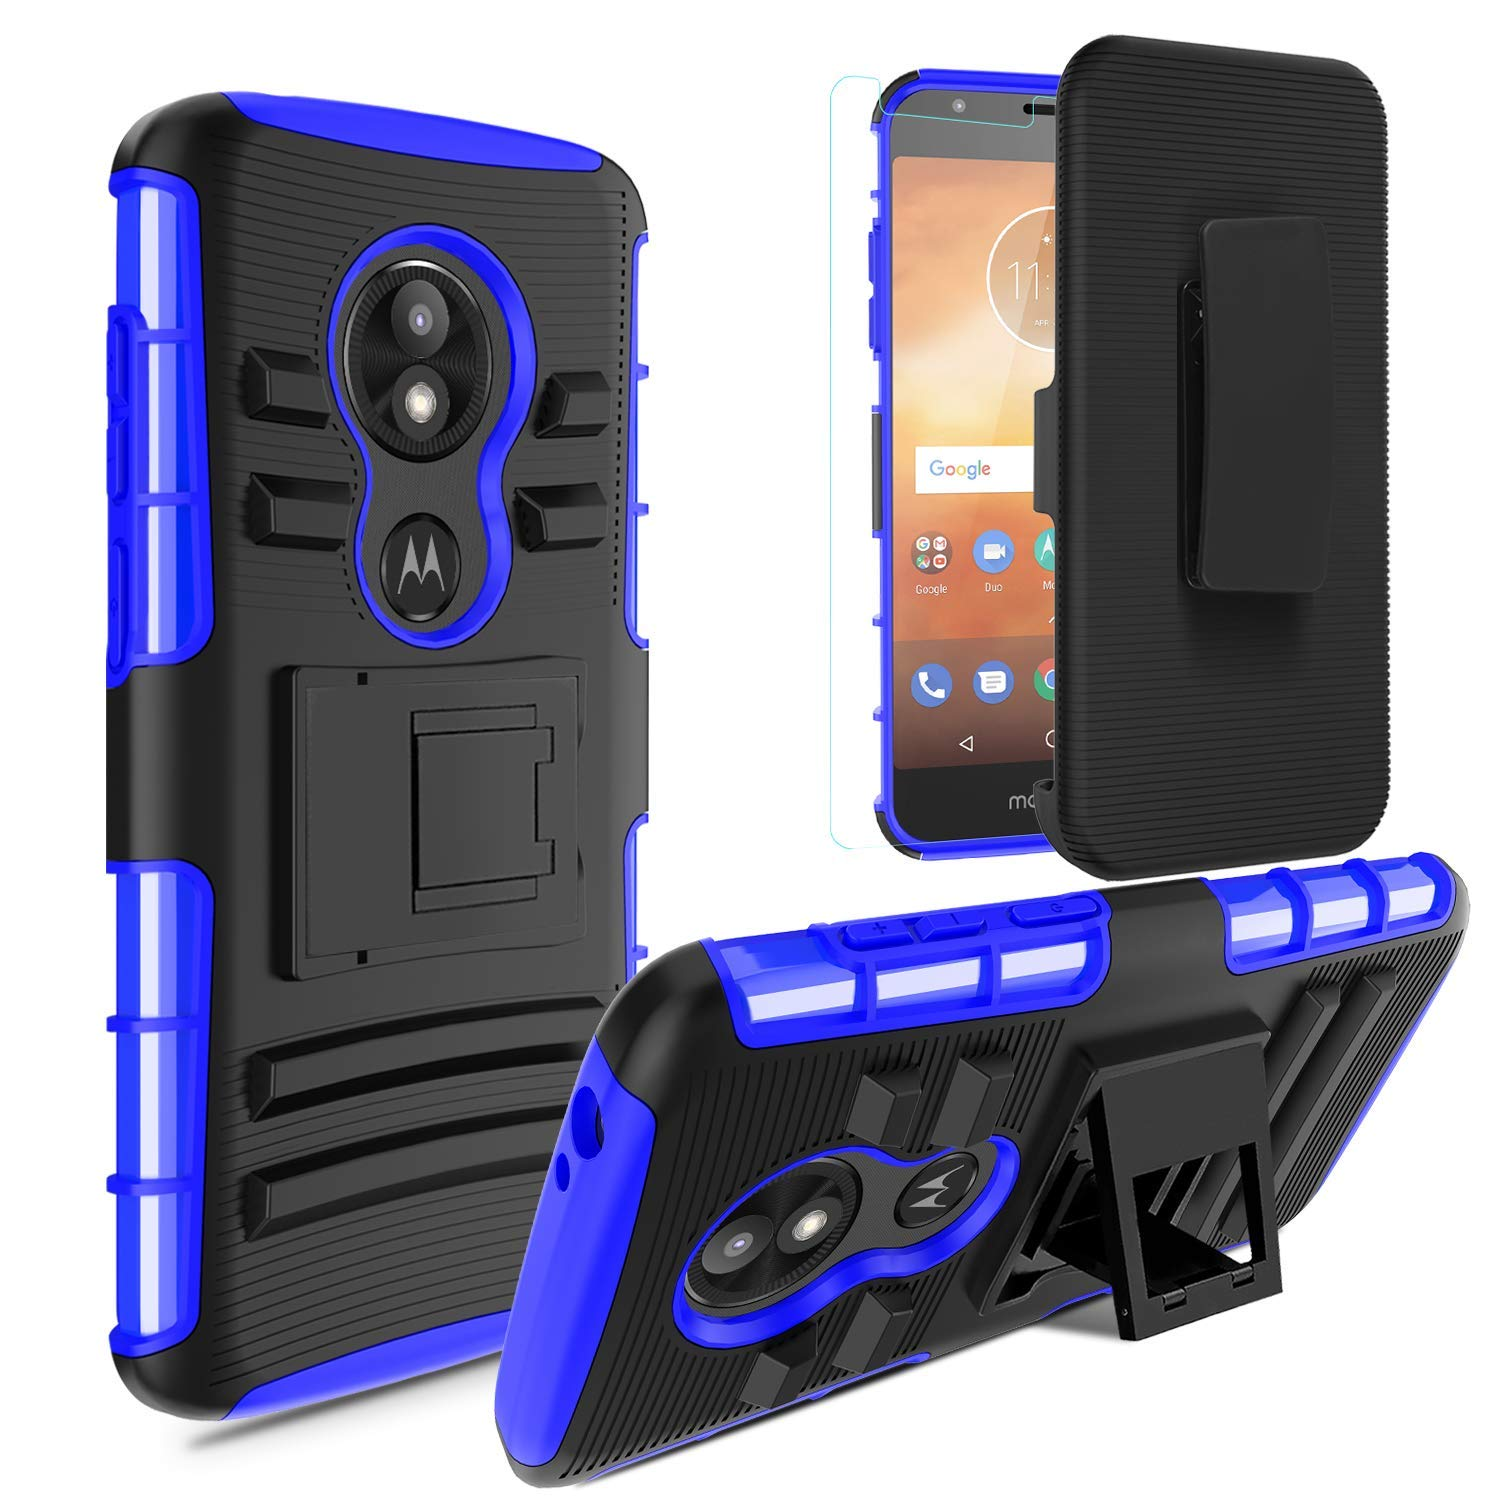 Moto E5 Play Case,Moto E5 Cruise/Moto E Play 5th Gen Case w/Tempered Glass Screen Protector,Heavy Duty Hybrid Shockproof Protective Case w/Swivel Belt Clip Holster Kickstand Men/Women/Boys,Blue